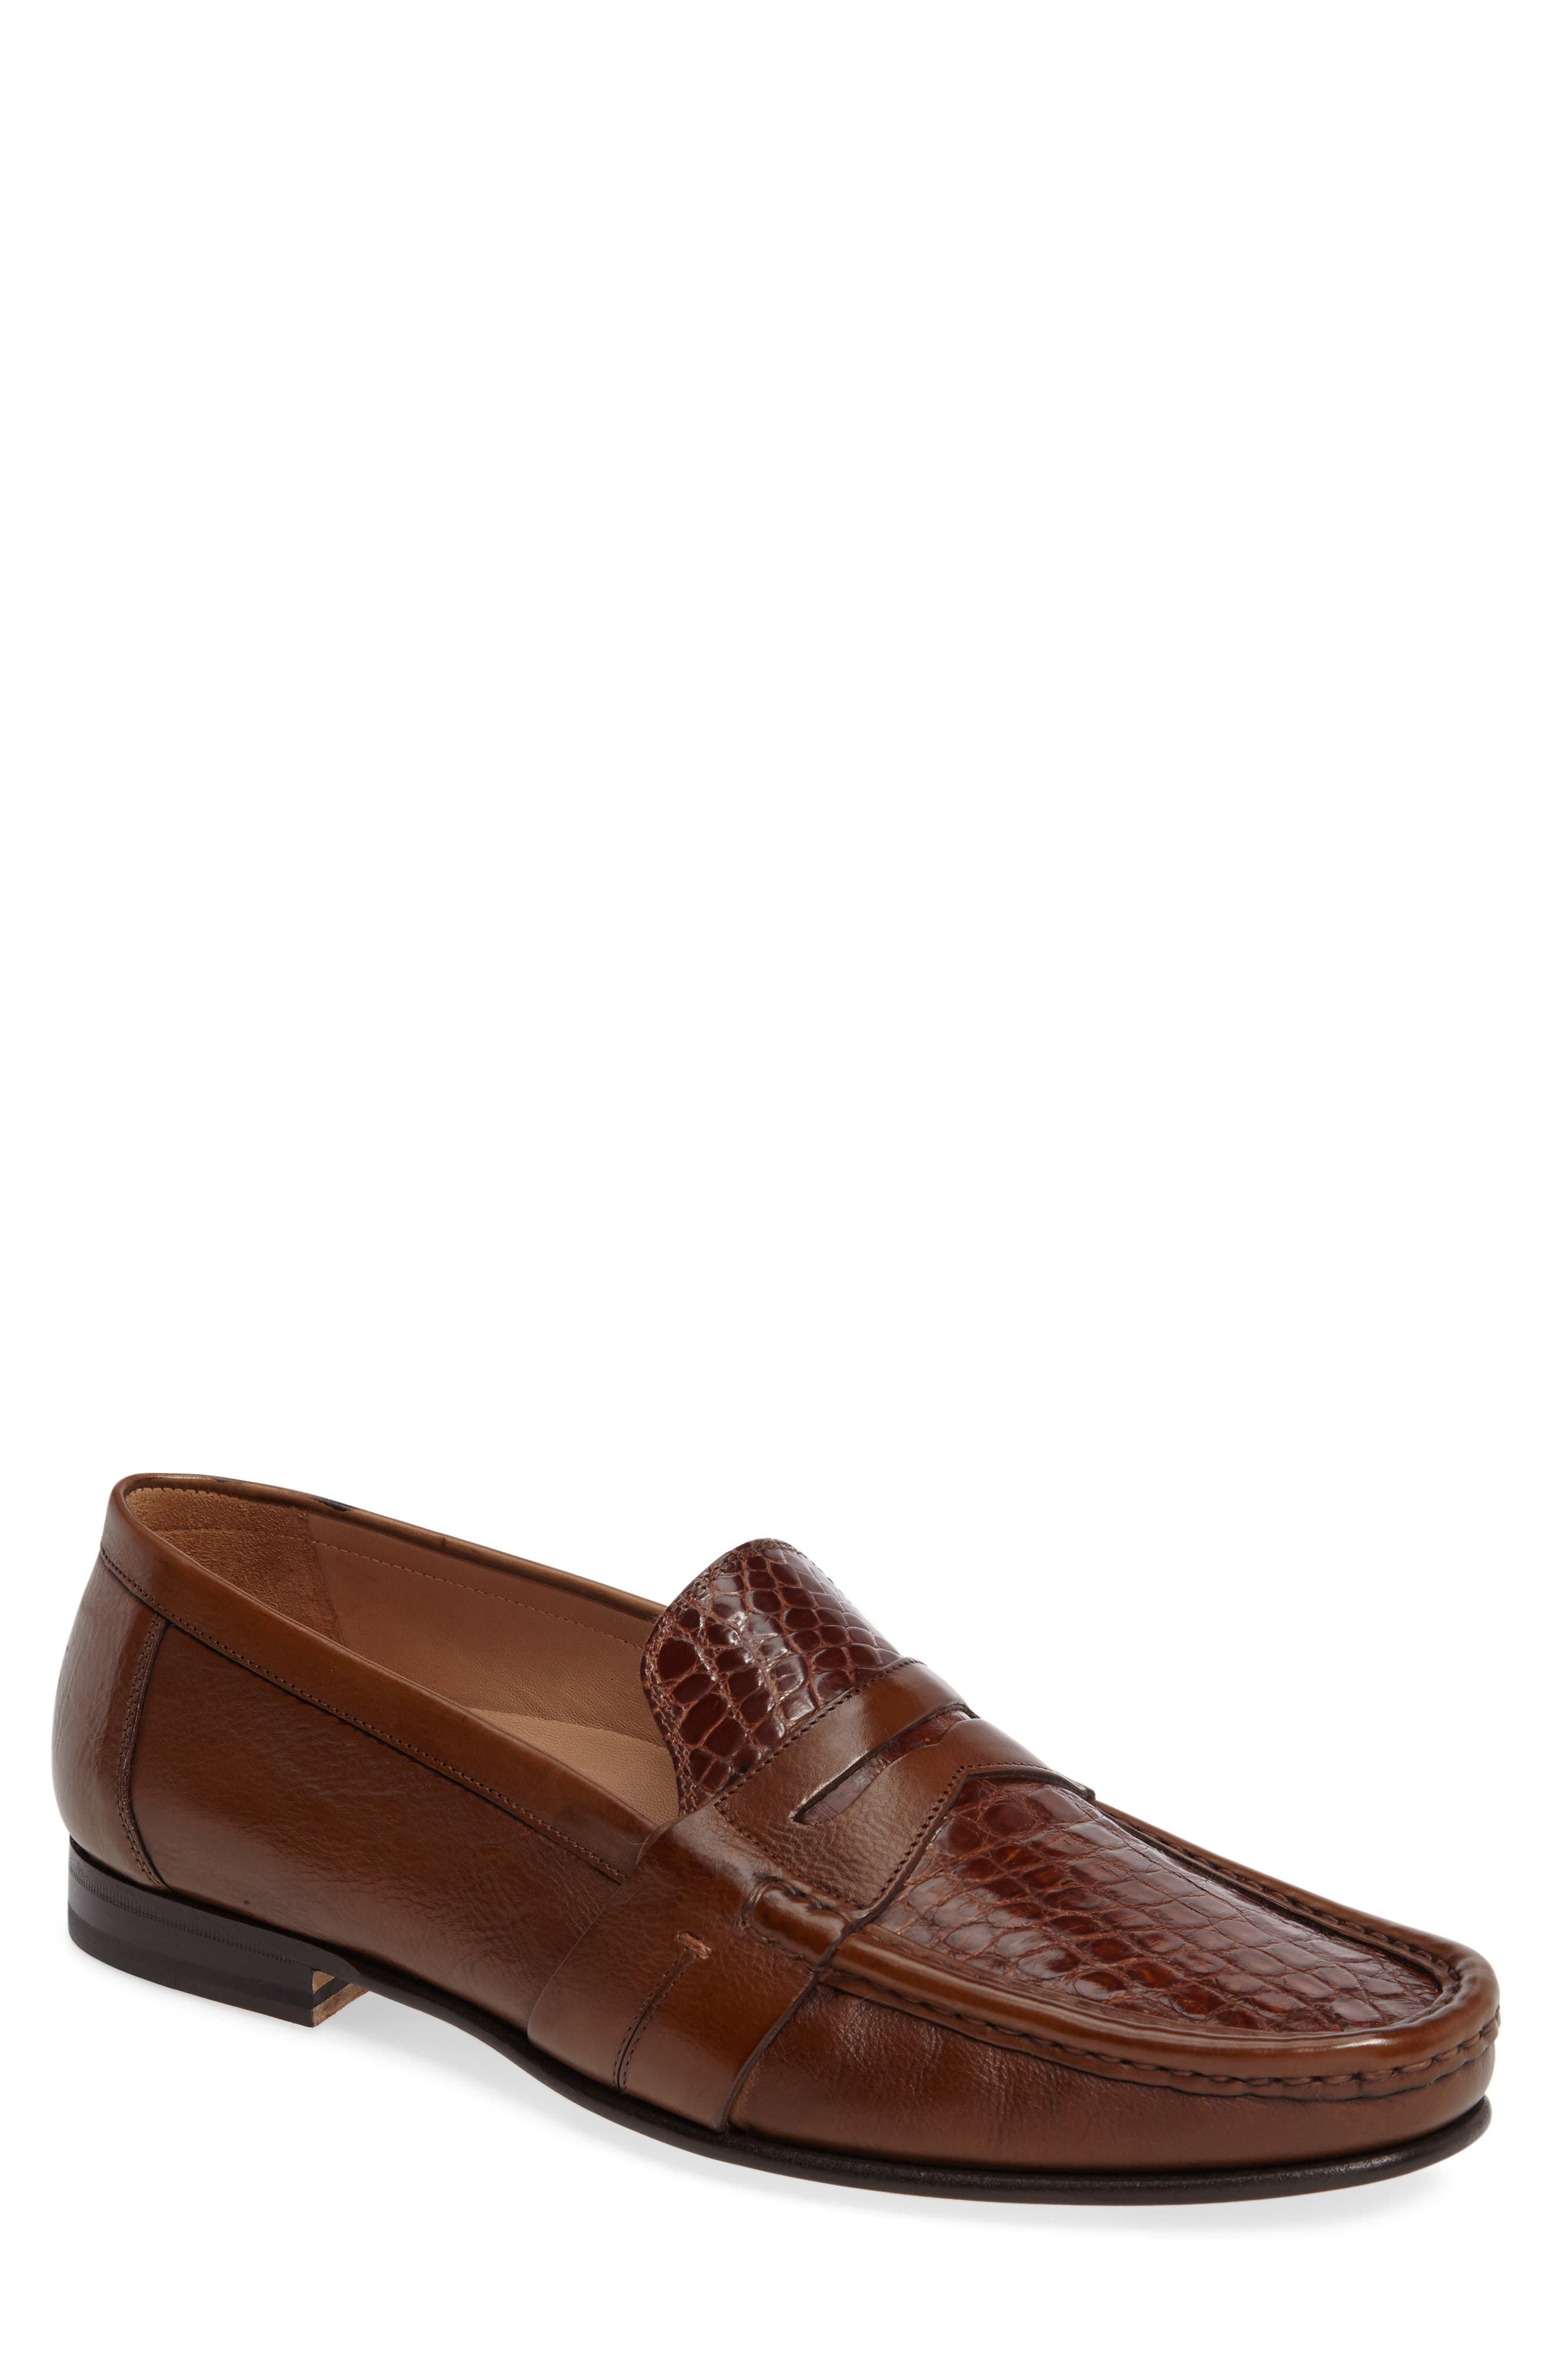 Marconi Penny Loafer,                             Main thumbnail 2, color,